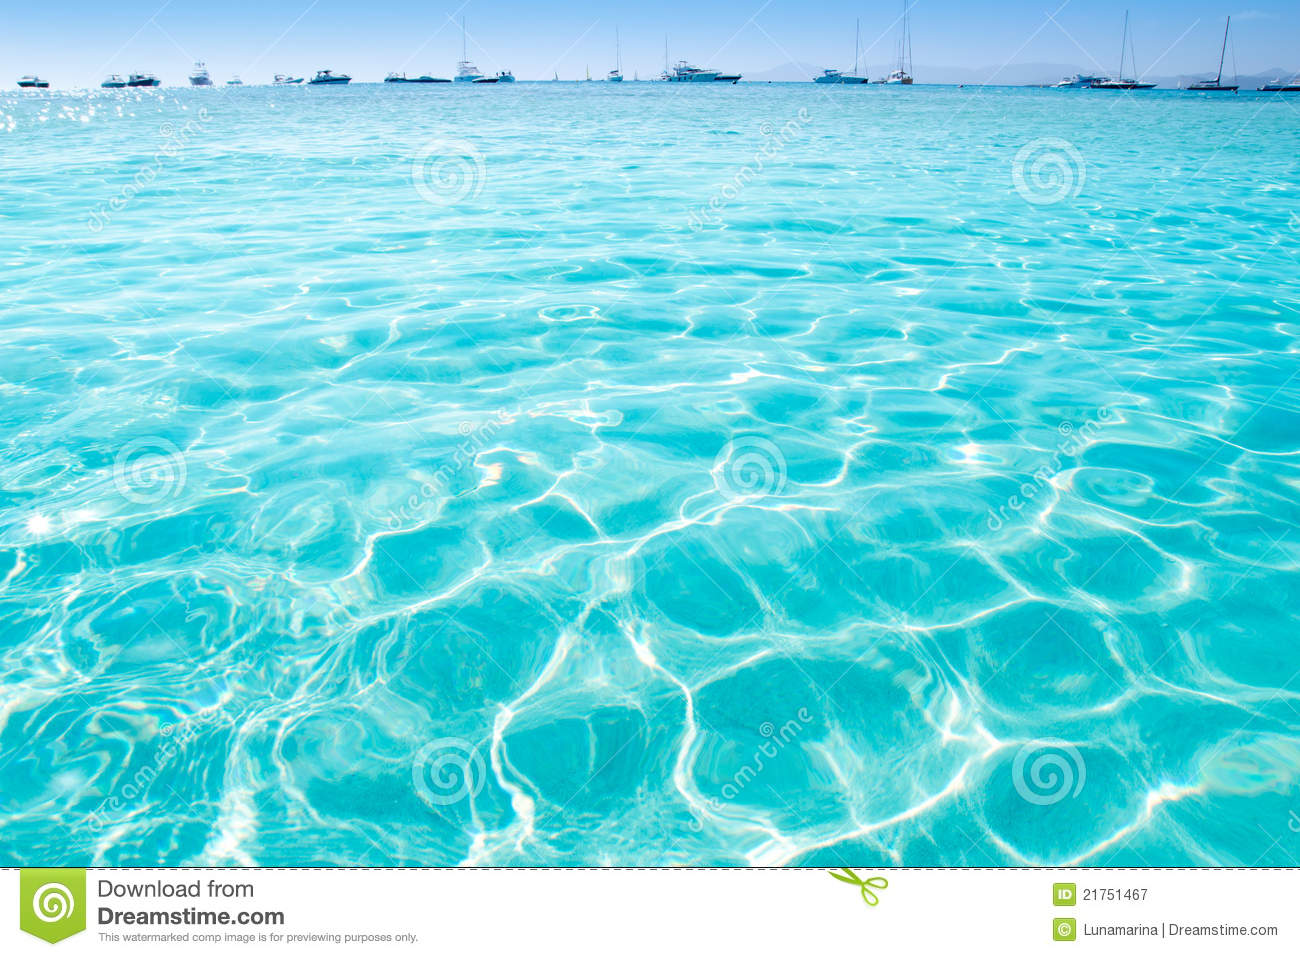 Blue Turquoise Ripple Formentera Water Royalty Free Stock Photography Image 21751467